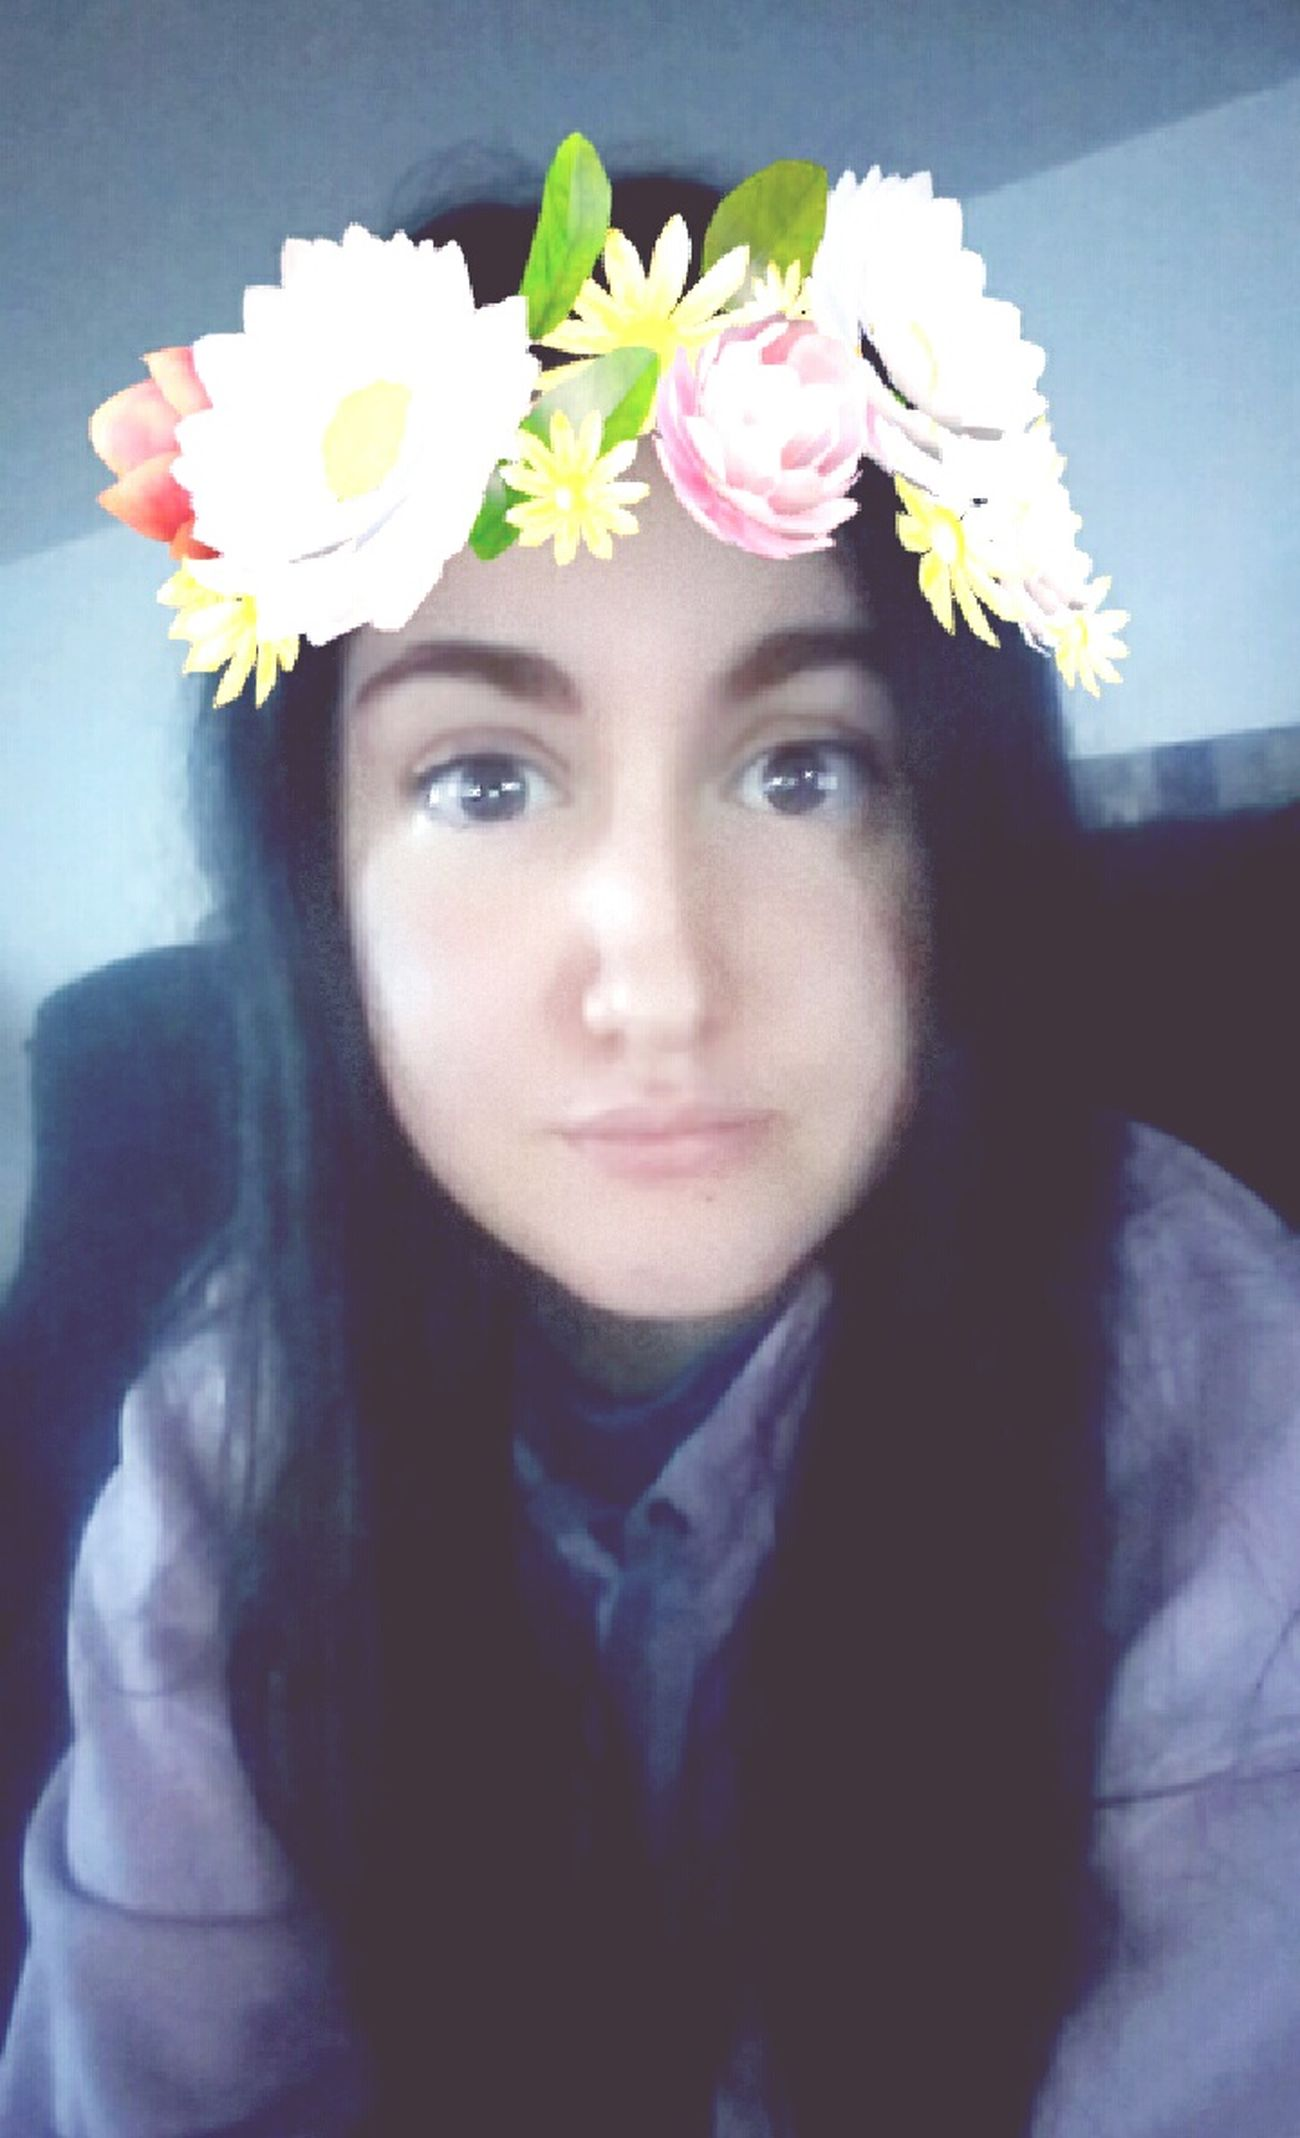 Do I look pretty without make-up? 😂 No Make-up No Makeup Model Modelgirl Snapchat Snapchat Selfies Hello World That's Me Relaxing Cozy At Home Without Makeup